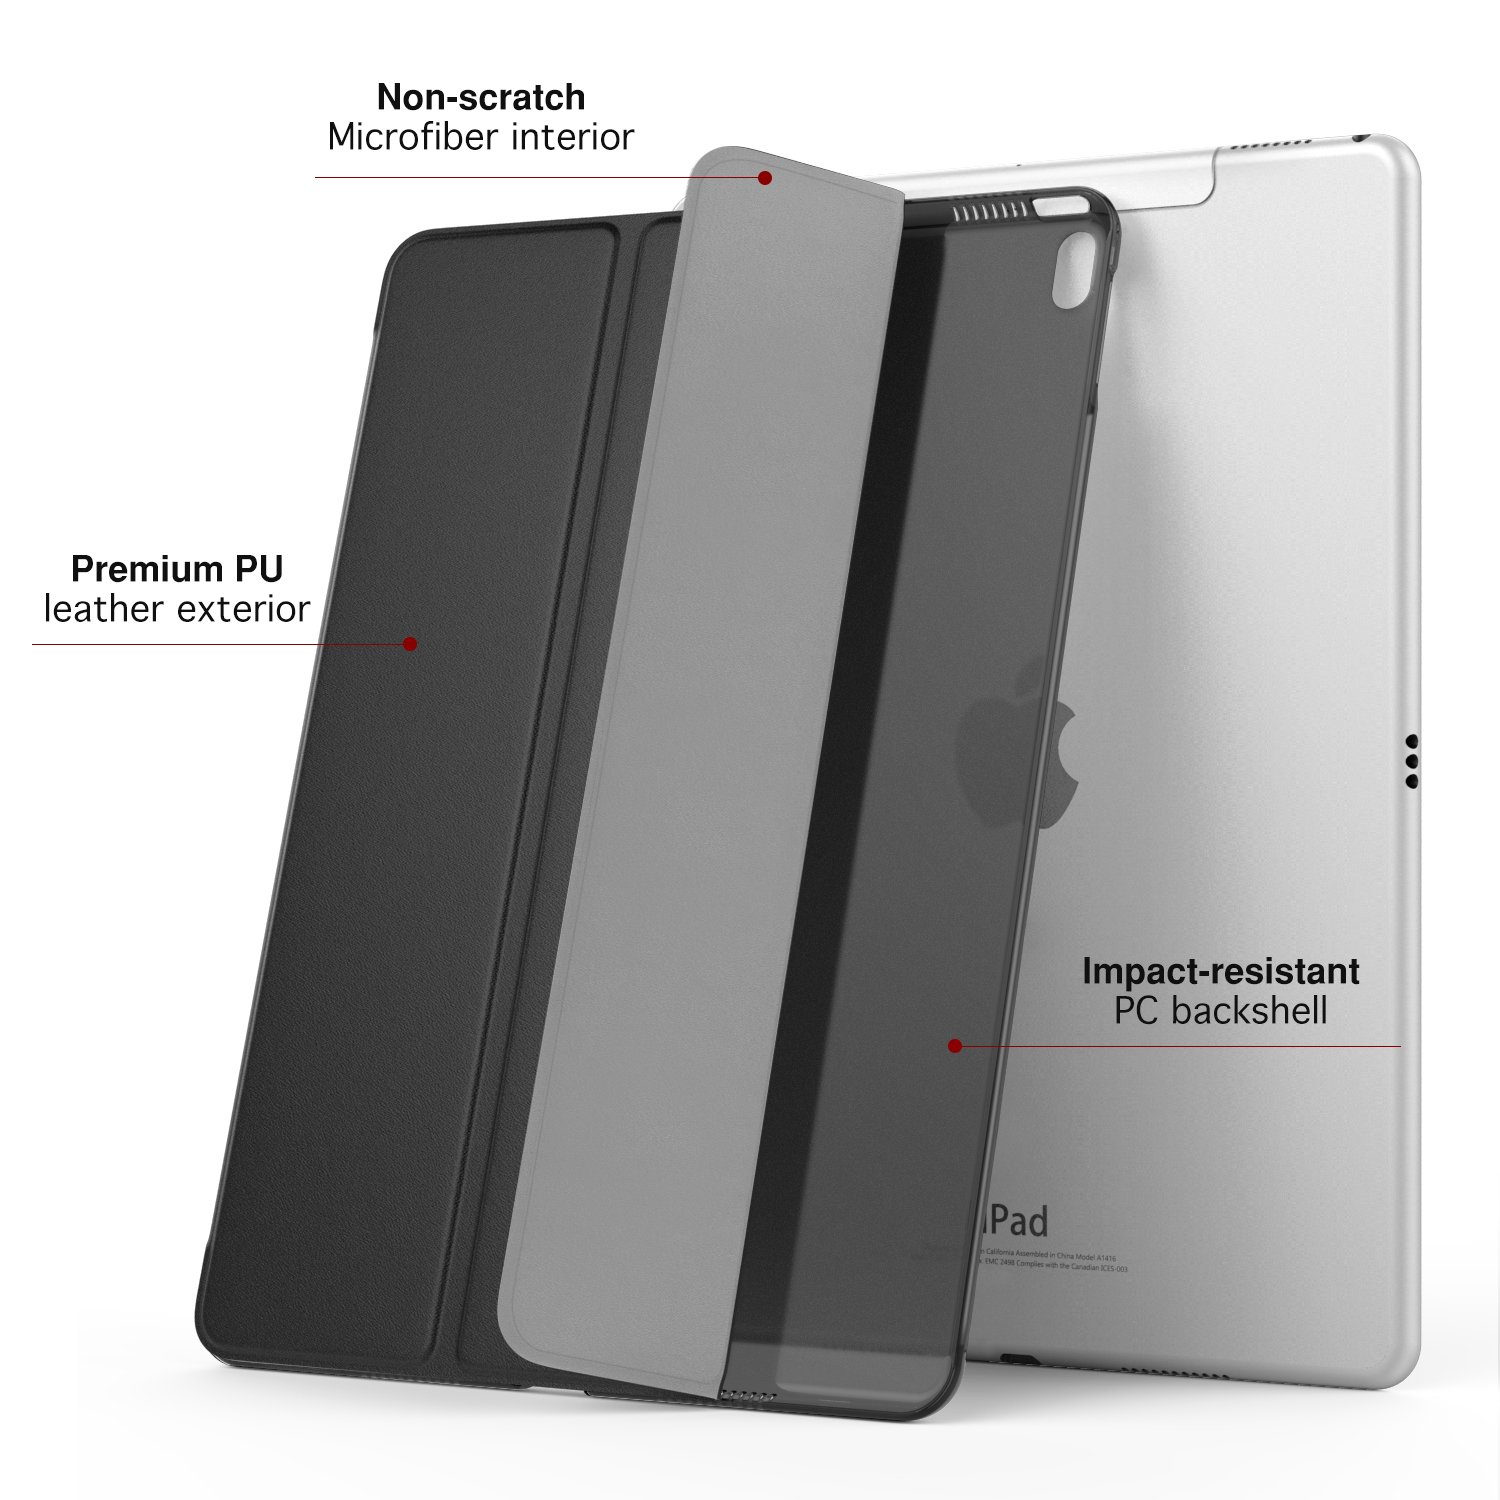 MoKo Case for iPad Pro 10.5 - Slim Lightweight Smart-shell Stand Cover with Translucent Frosted Back Protector for Apple iPad Pro 10.5 Inch 2017 Released Tablet, BLACK (Auto Wake / Sleep)